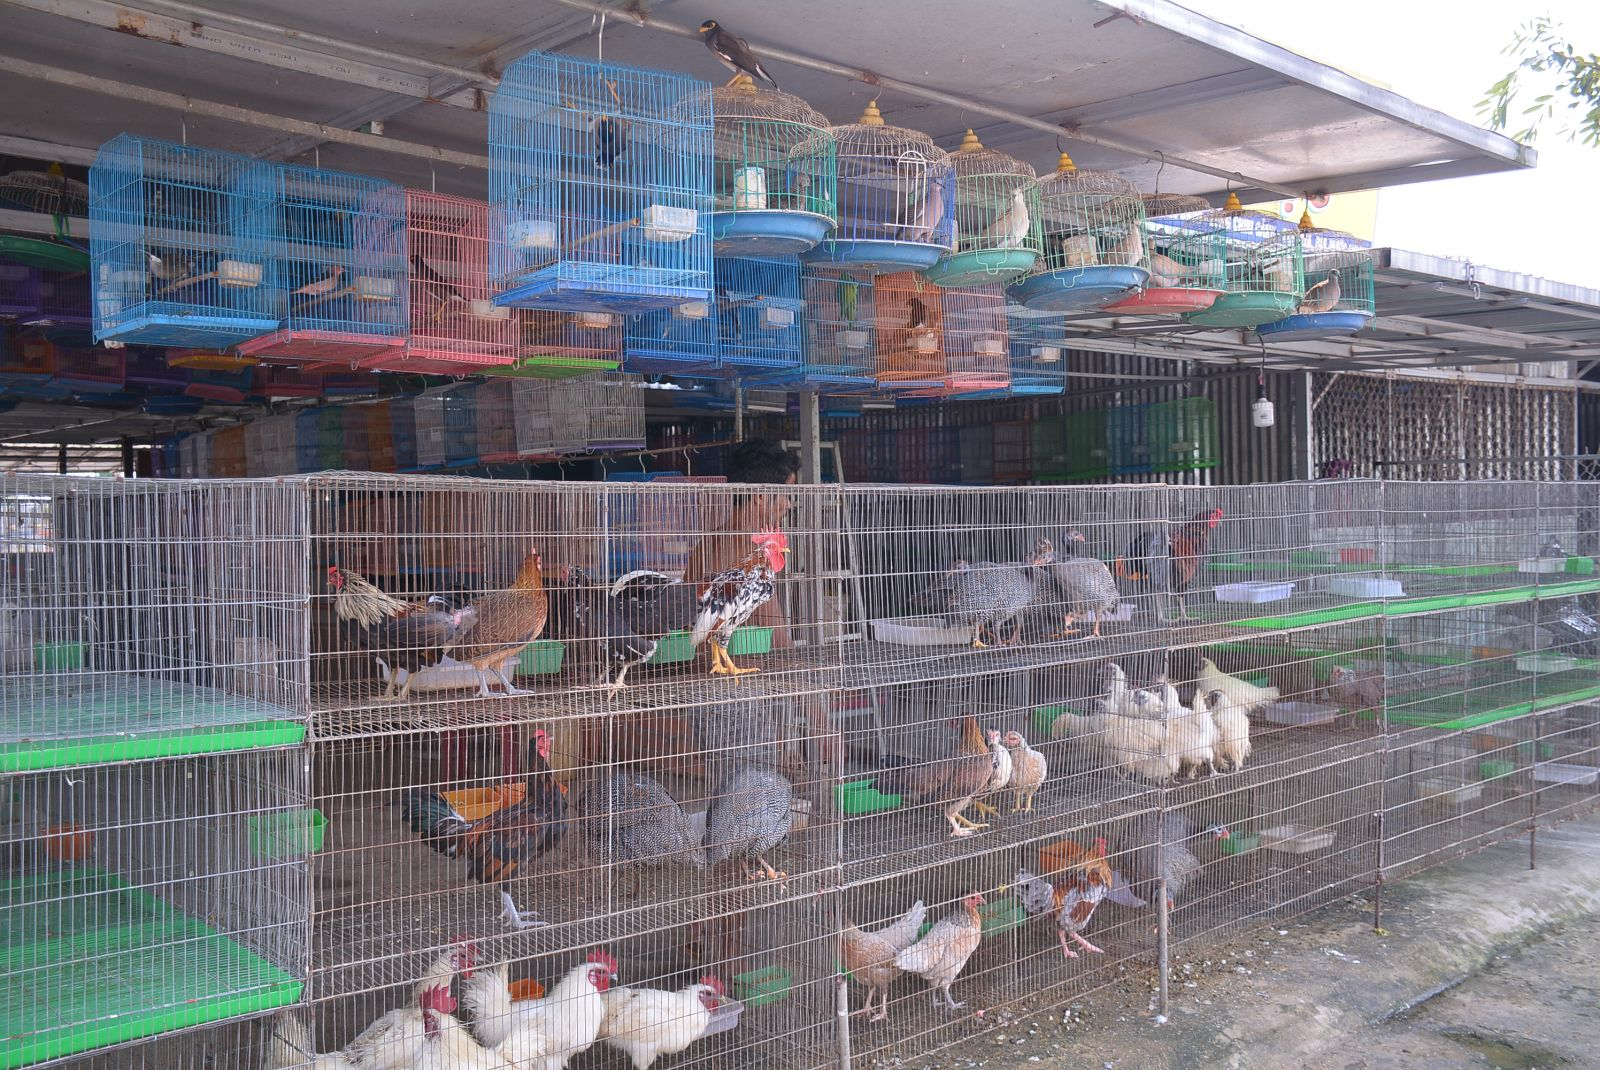 According to functional sectors, the most difficult task is to check for all kinds of ornament birds, this is also a problem in the inspection and handling process.